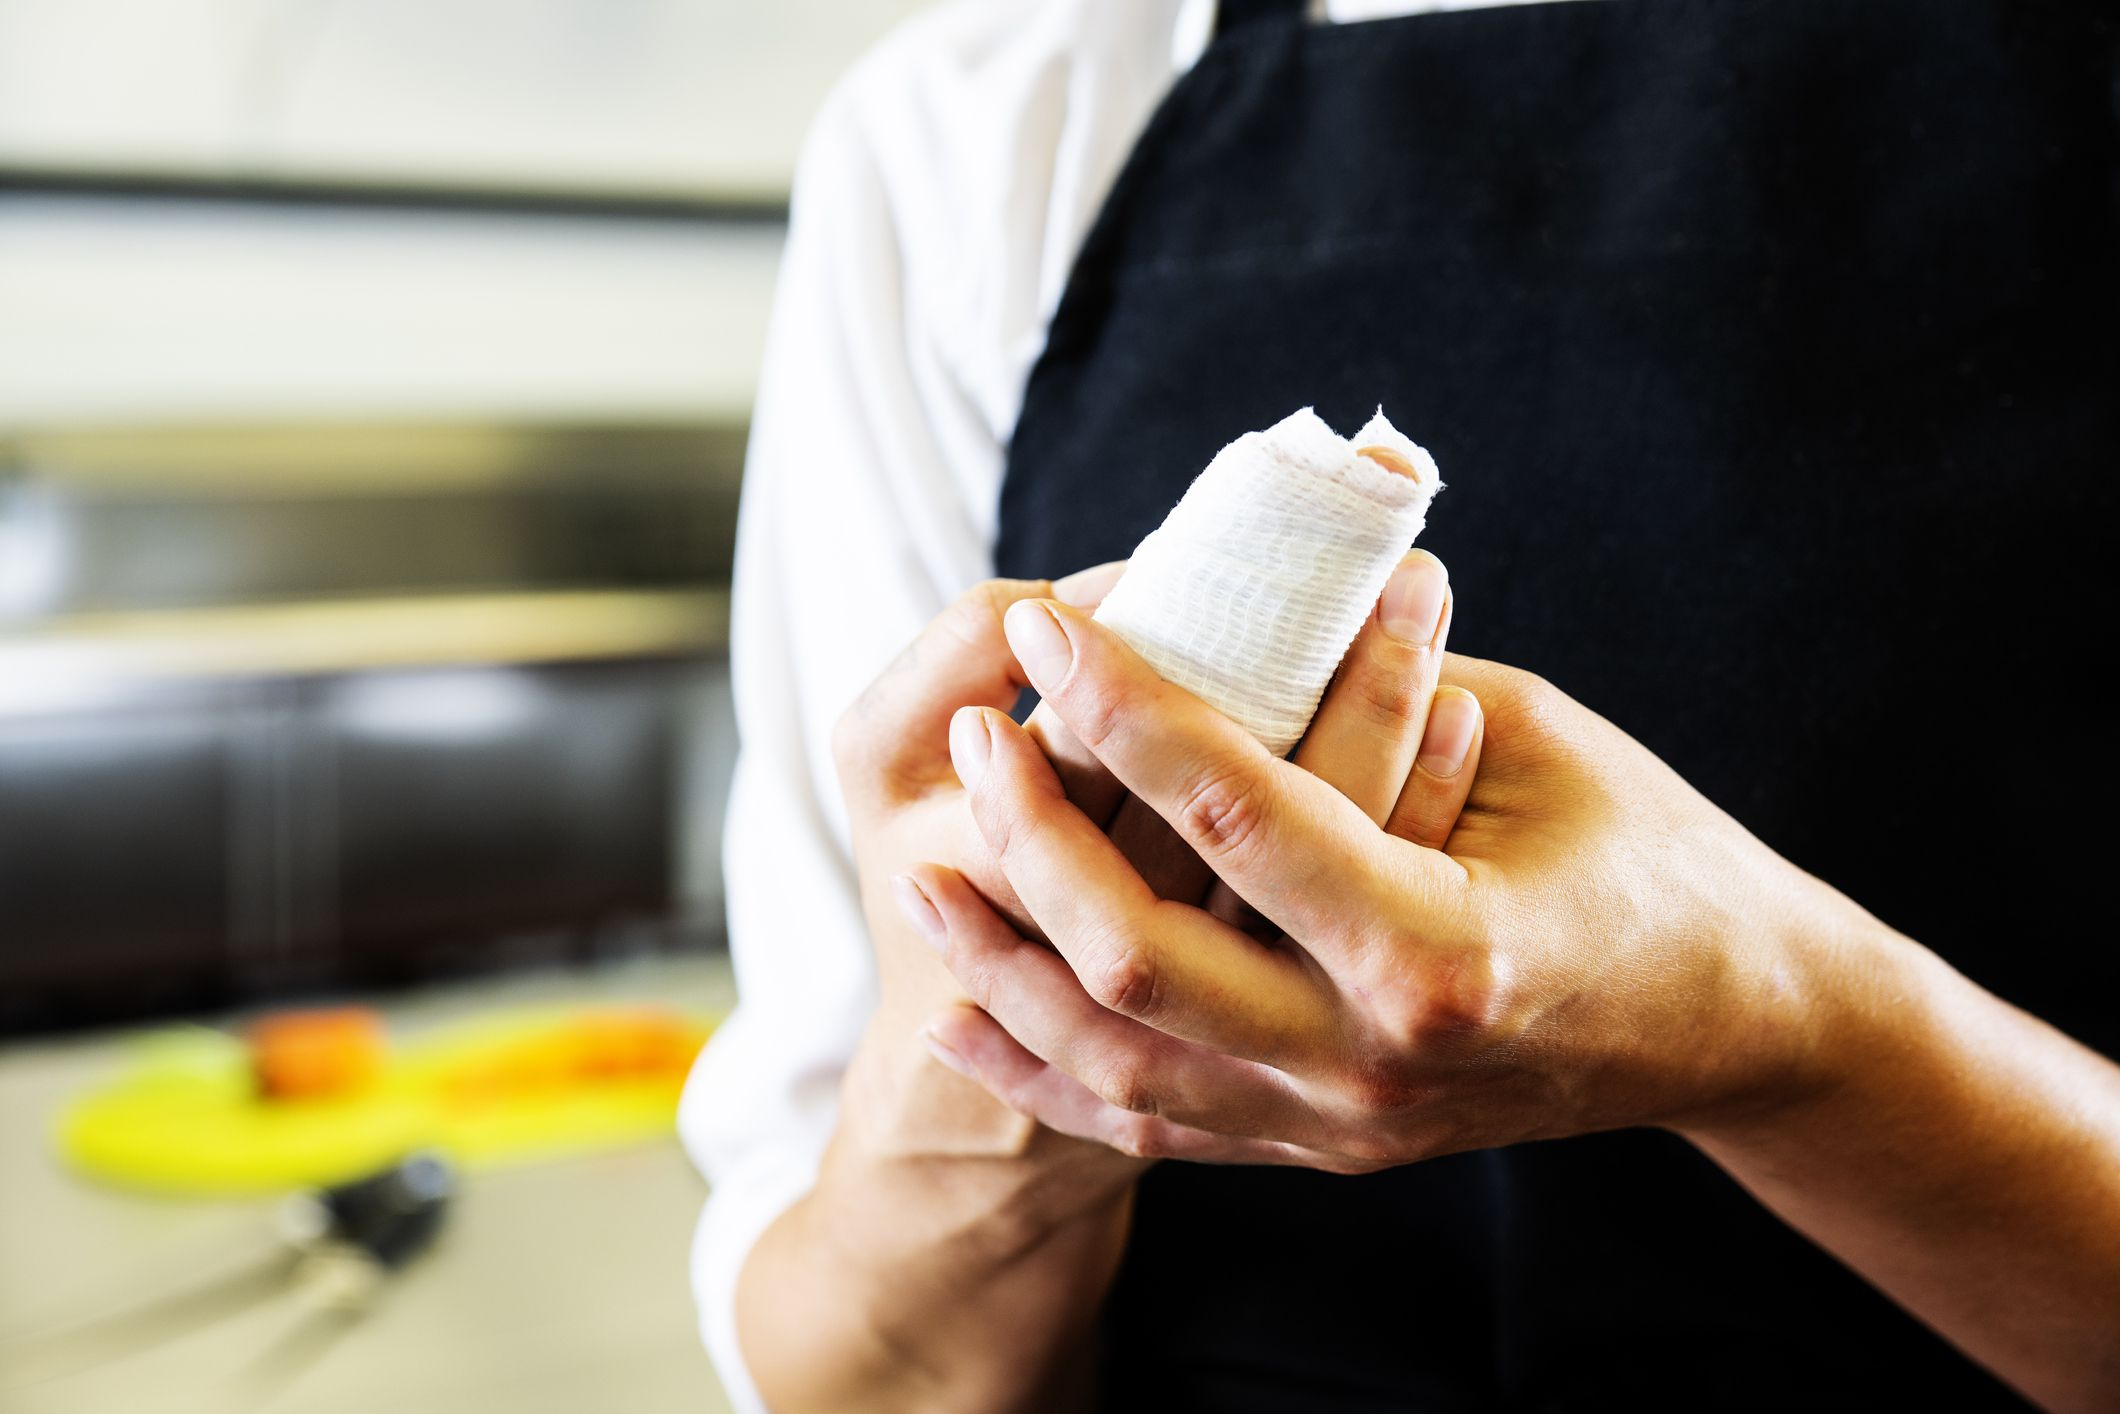 How to Treat Accidental Knife Cuts in the Kitchen